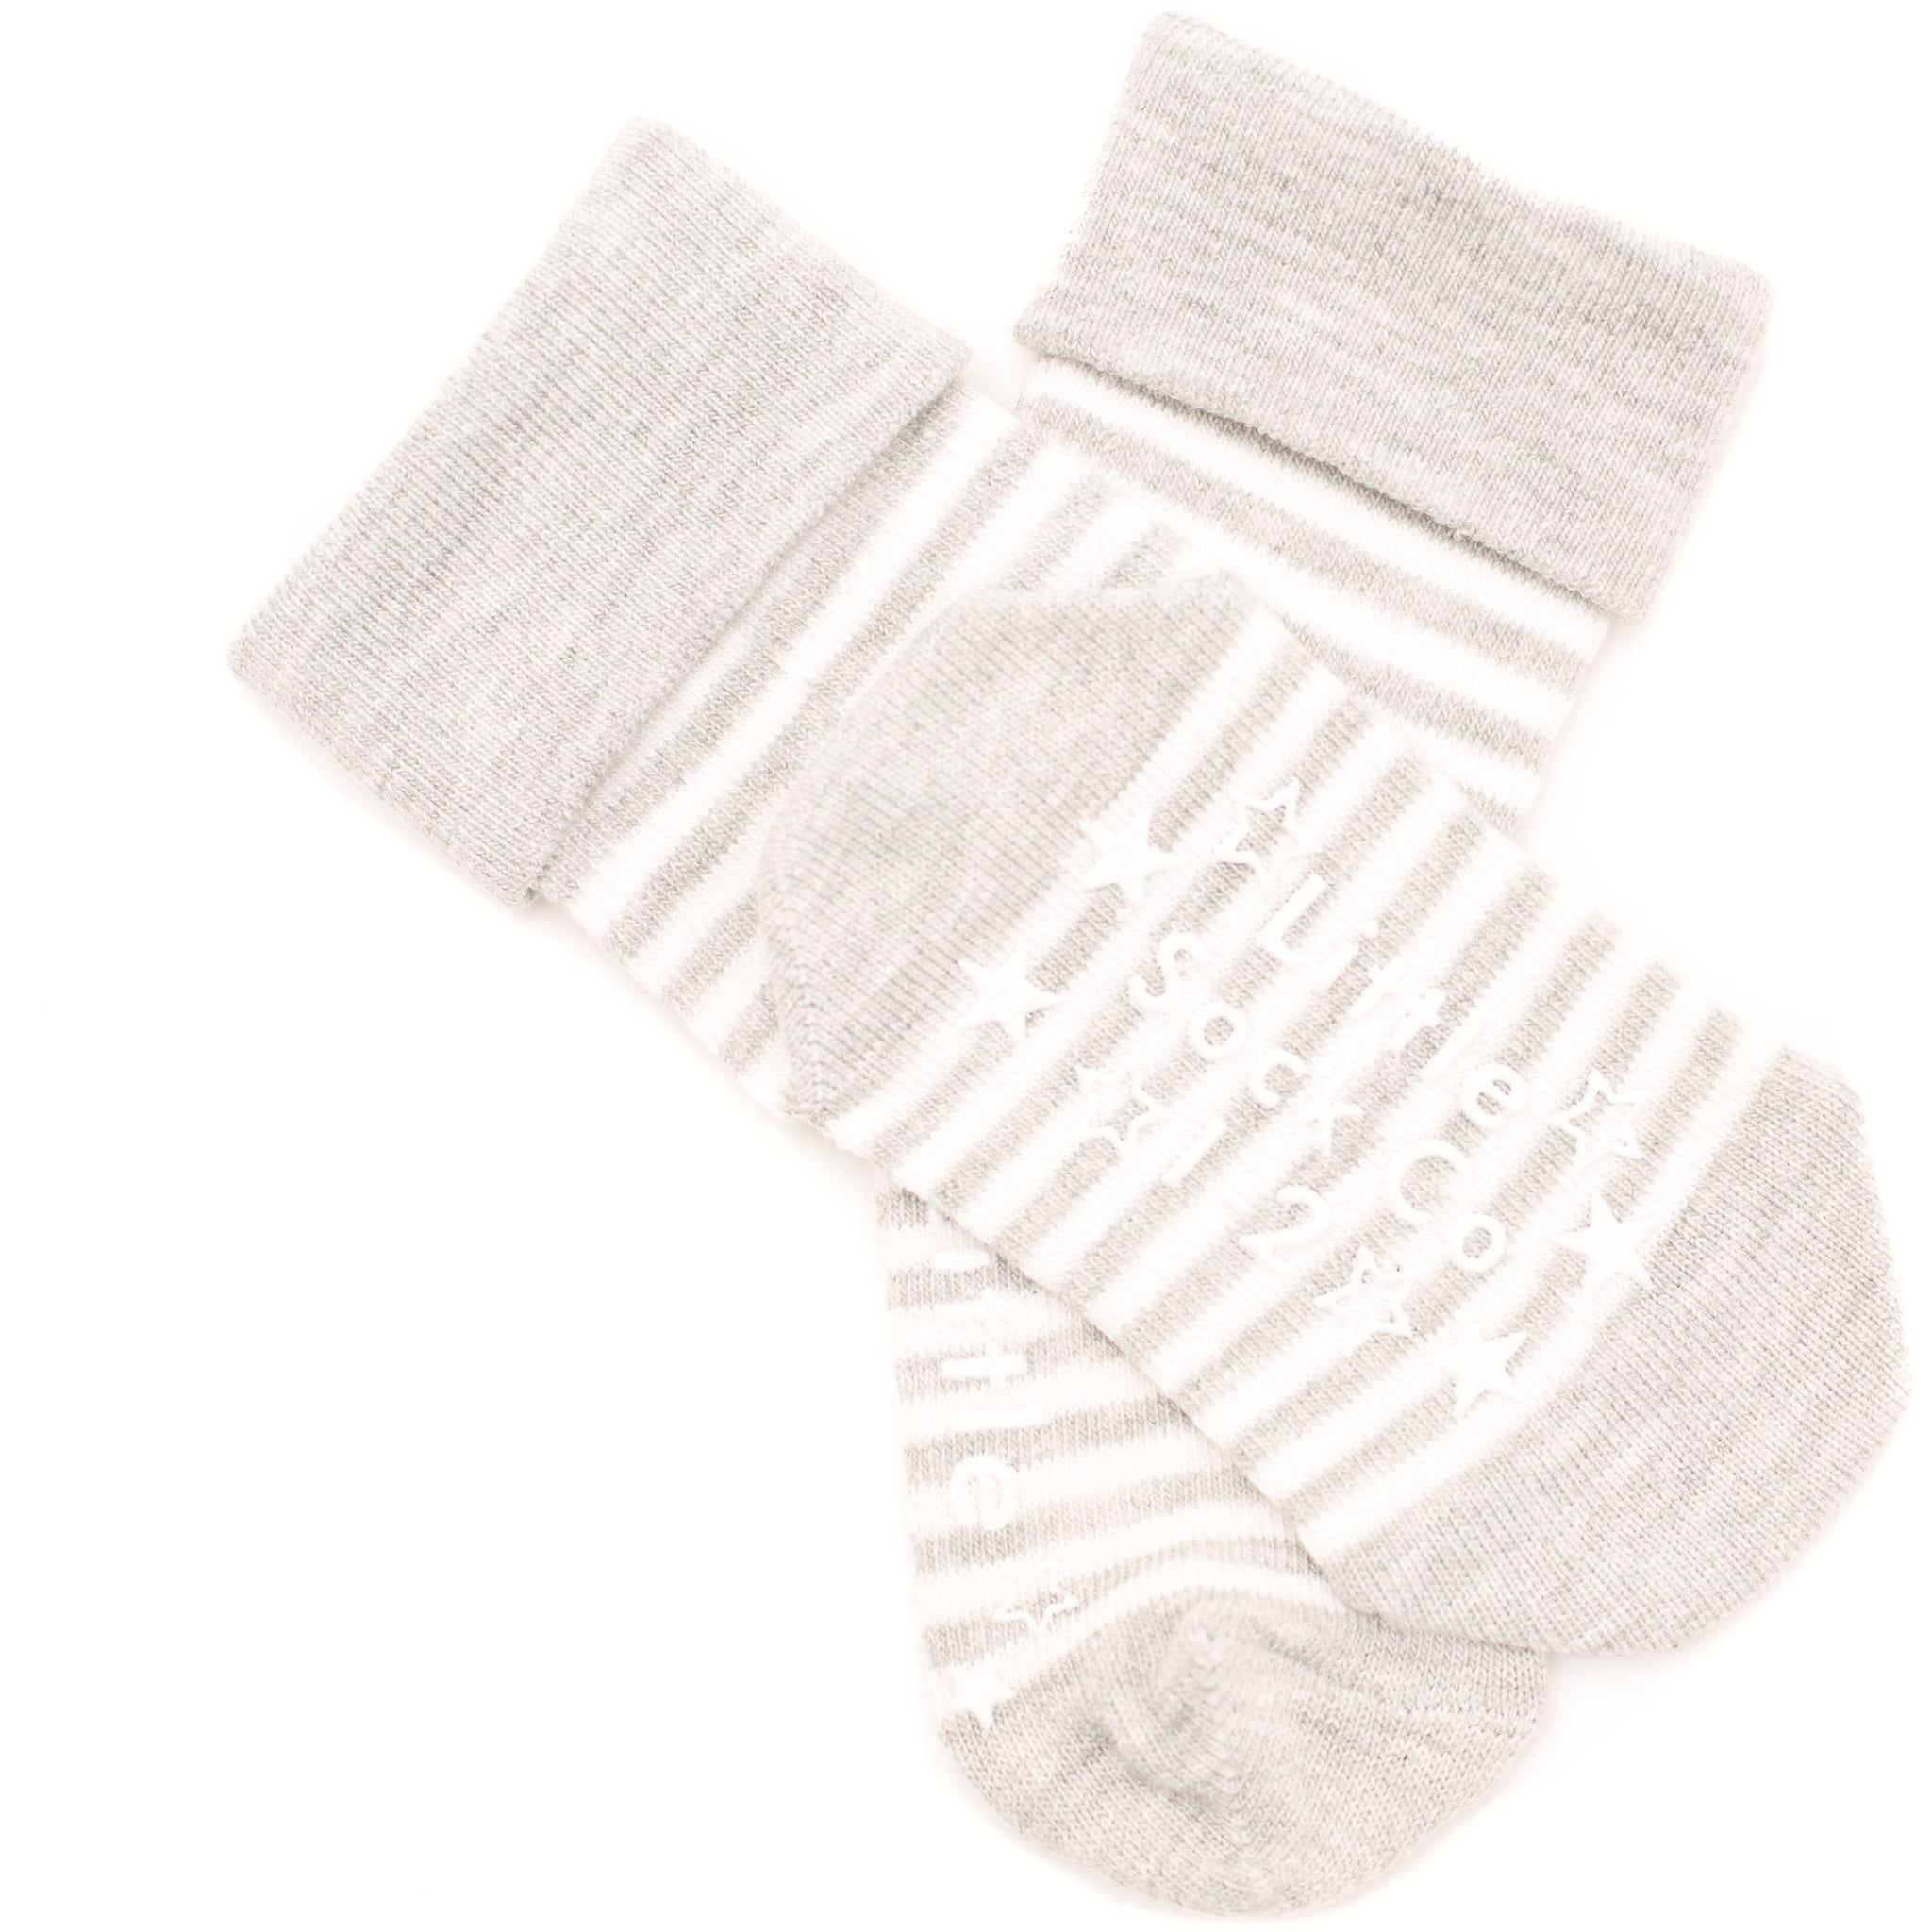 Signature Grey Marl roll top Stay on Socks